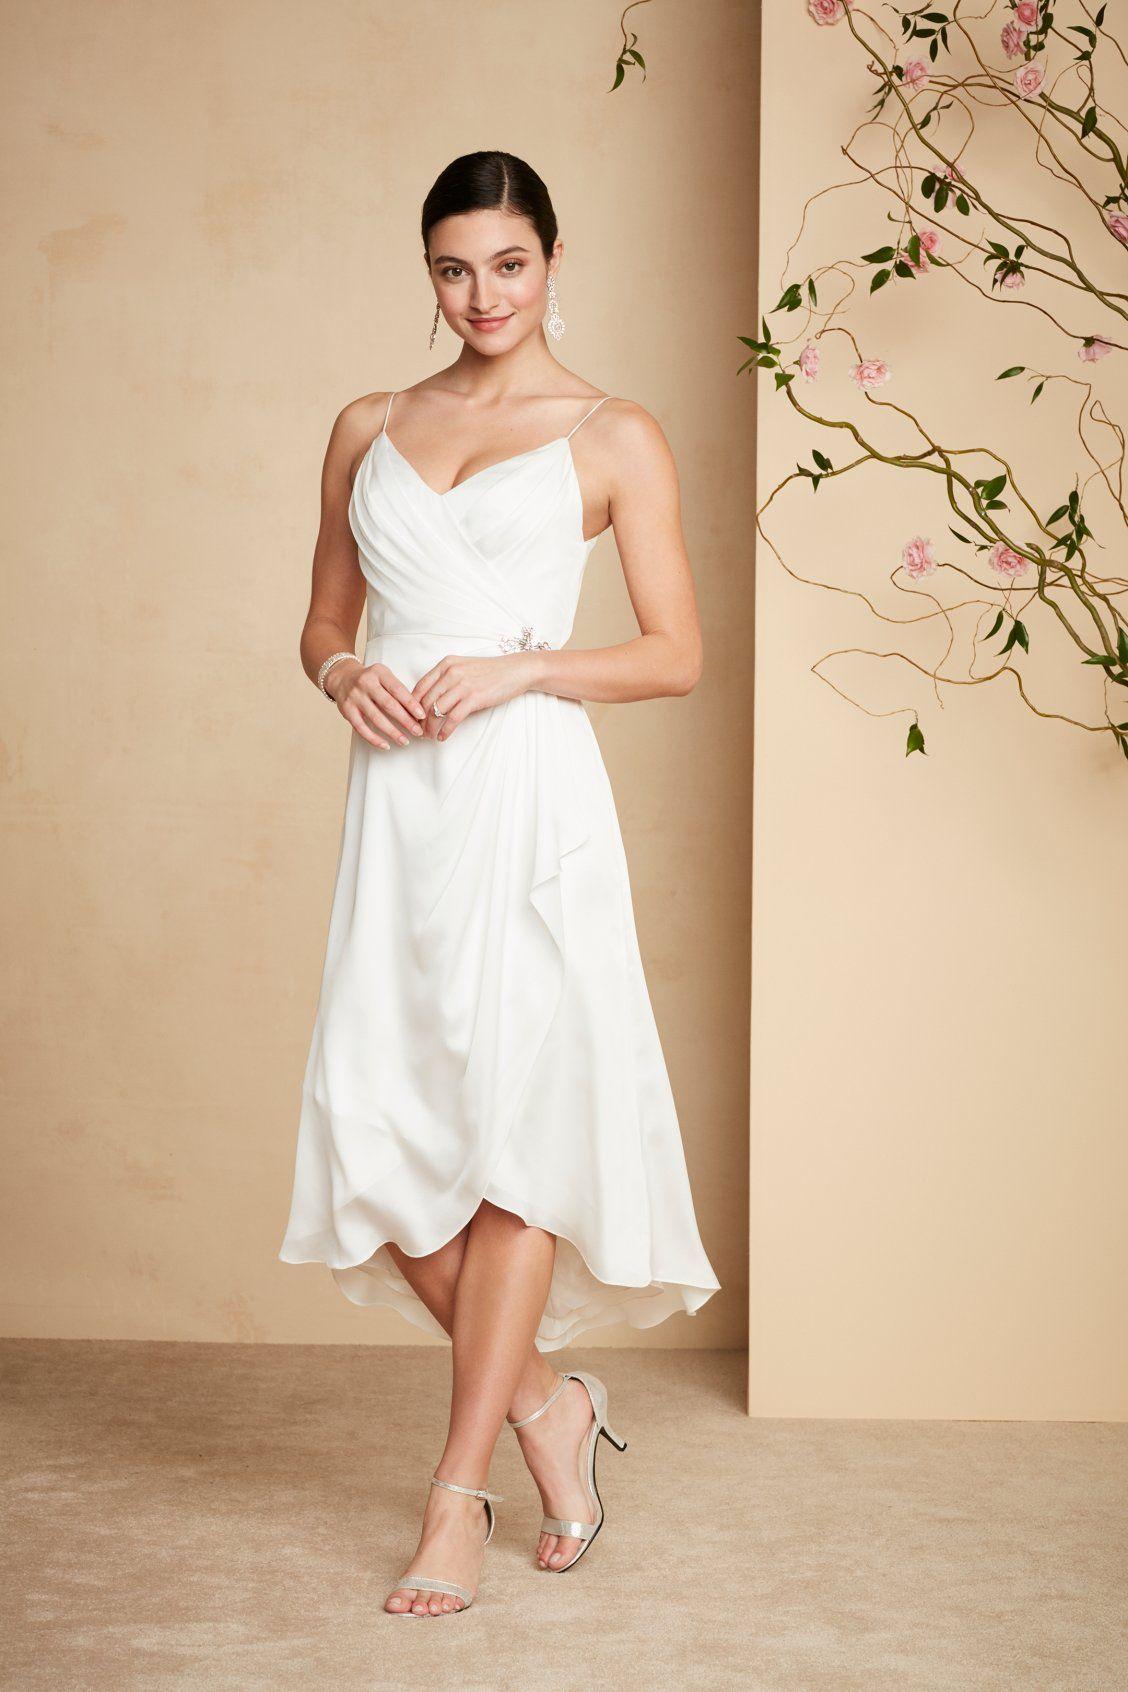 This slinky vneck short wedding dress is perfect for a city hall